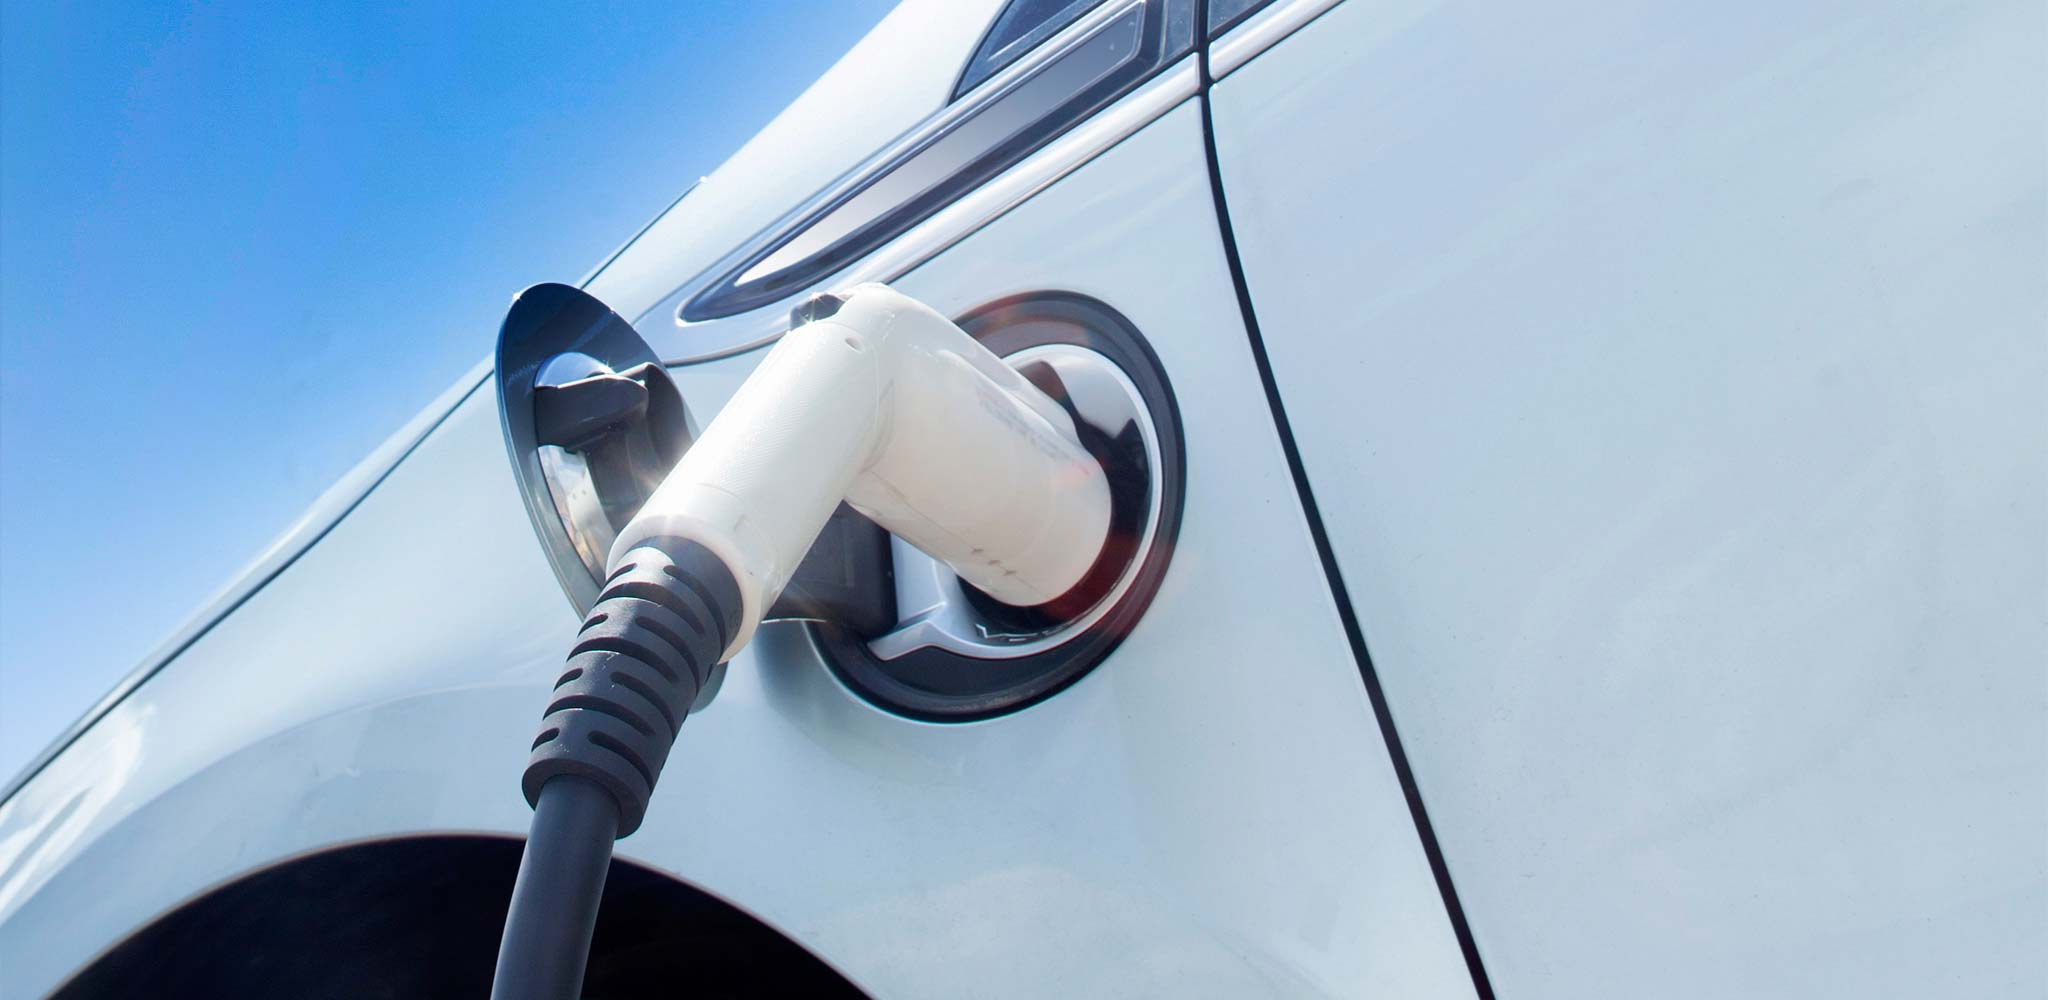 An e-car connected to the power supply symbolizes electromobility, an important sales market for MAPAL.